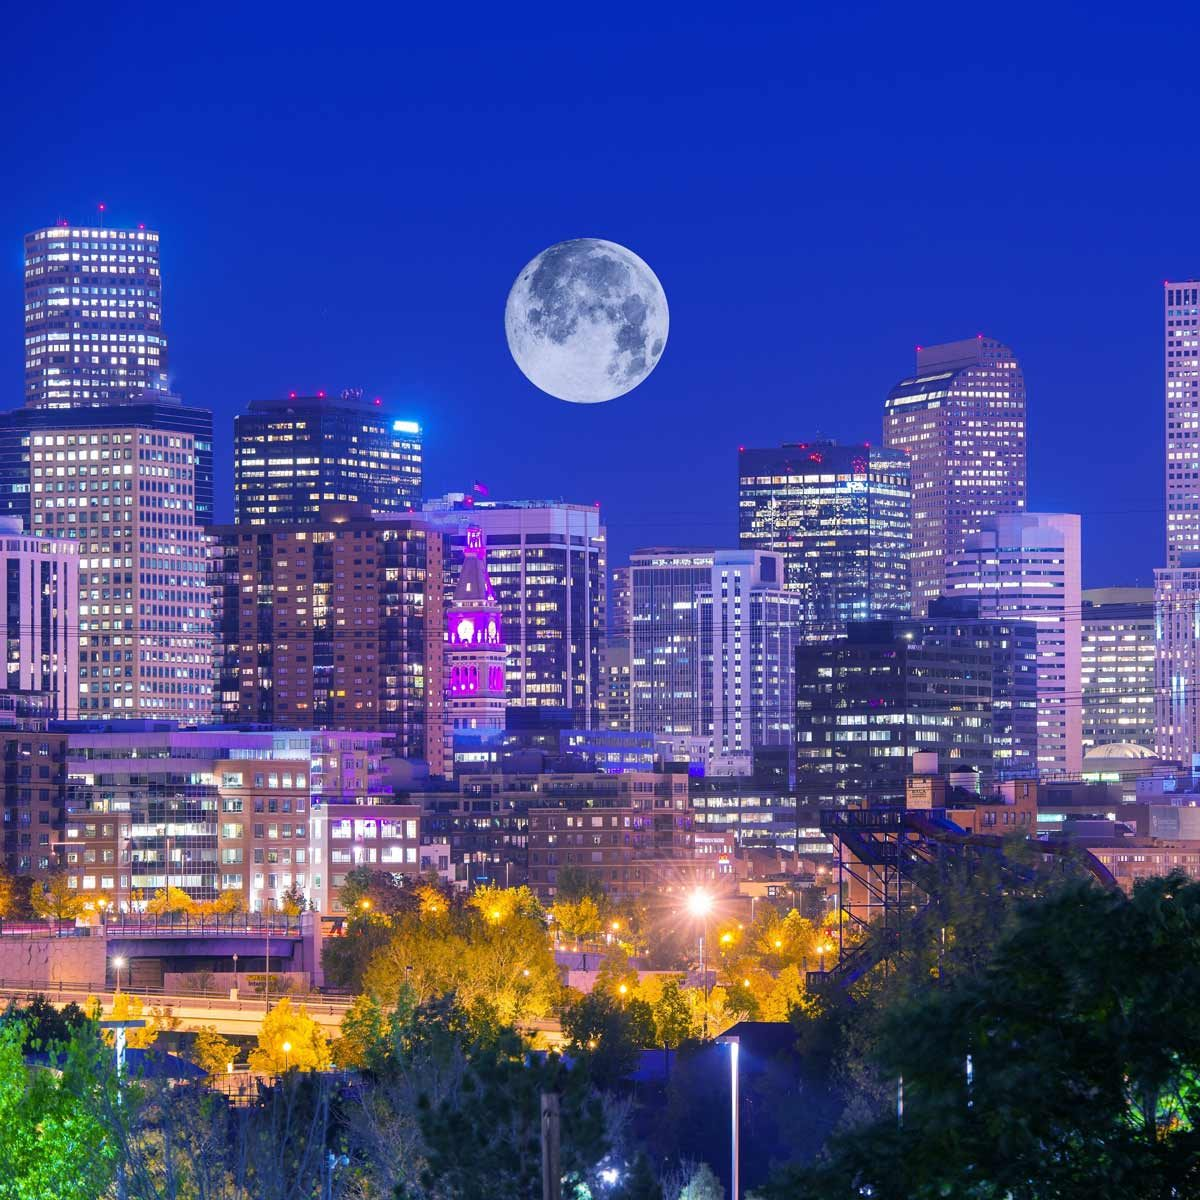 Denver-Colorado-at-night